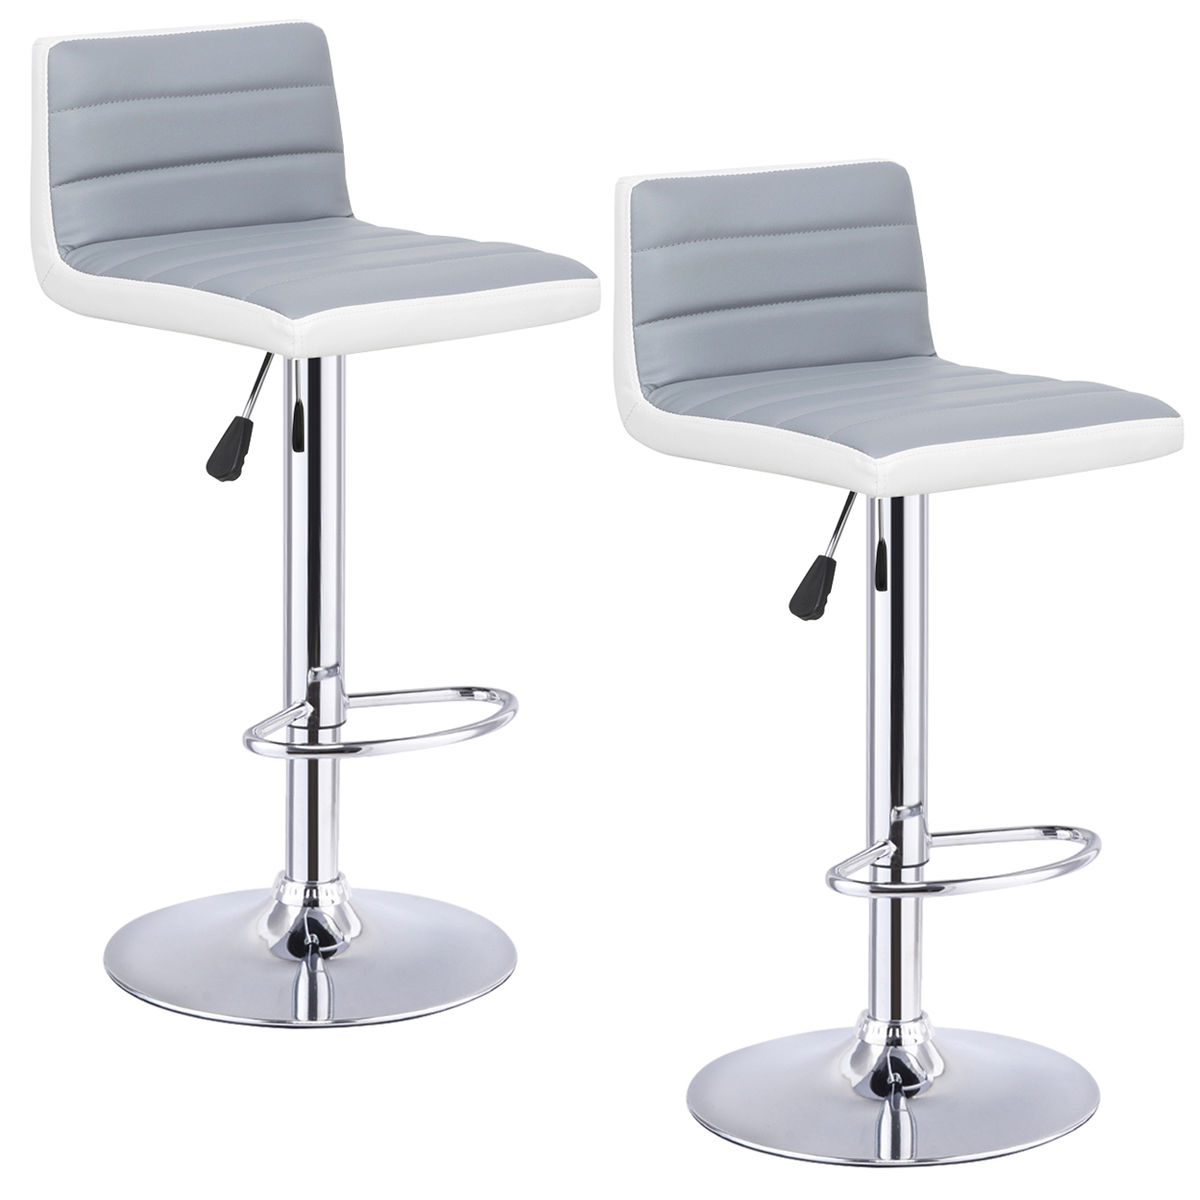 Costway Set of 2 Bar Stools Adjustable Bar Stool PU Leather Swivel Pub Chairs Armless by Costway